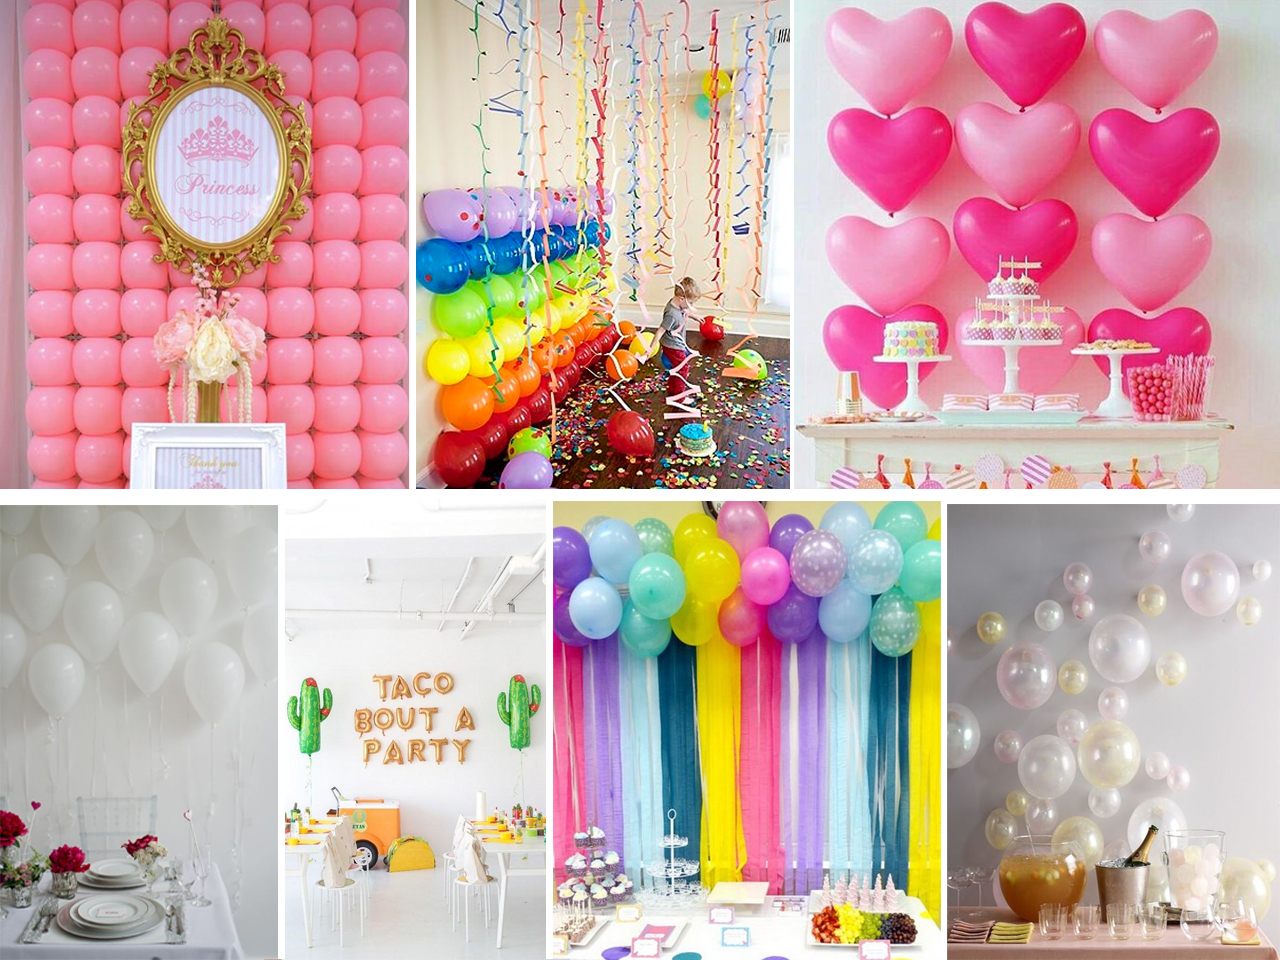 Descubre c mo decorar con globos con estas fant sticas ideas - Decoraciones de pared ...